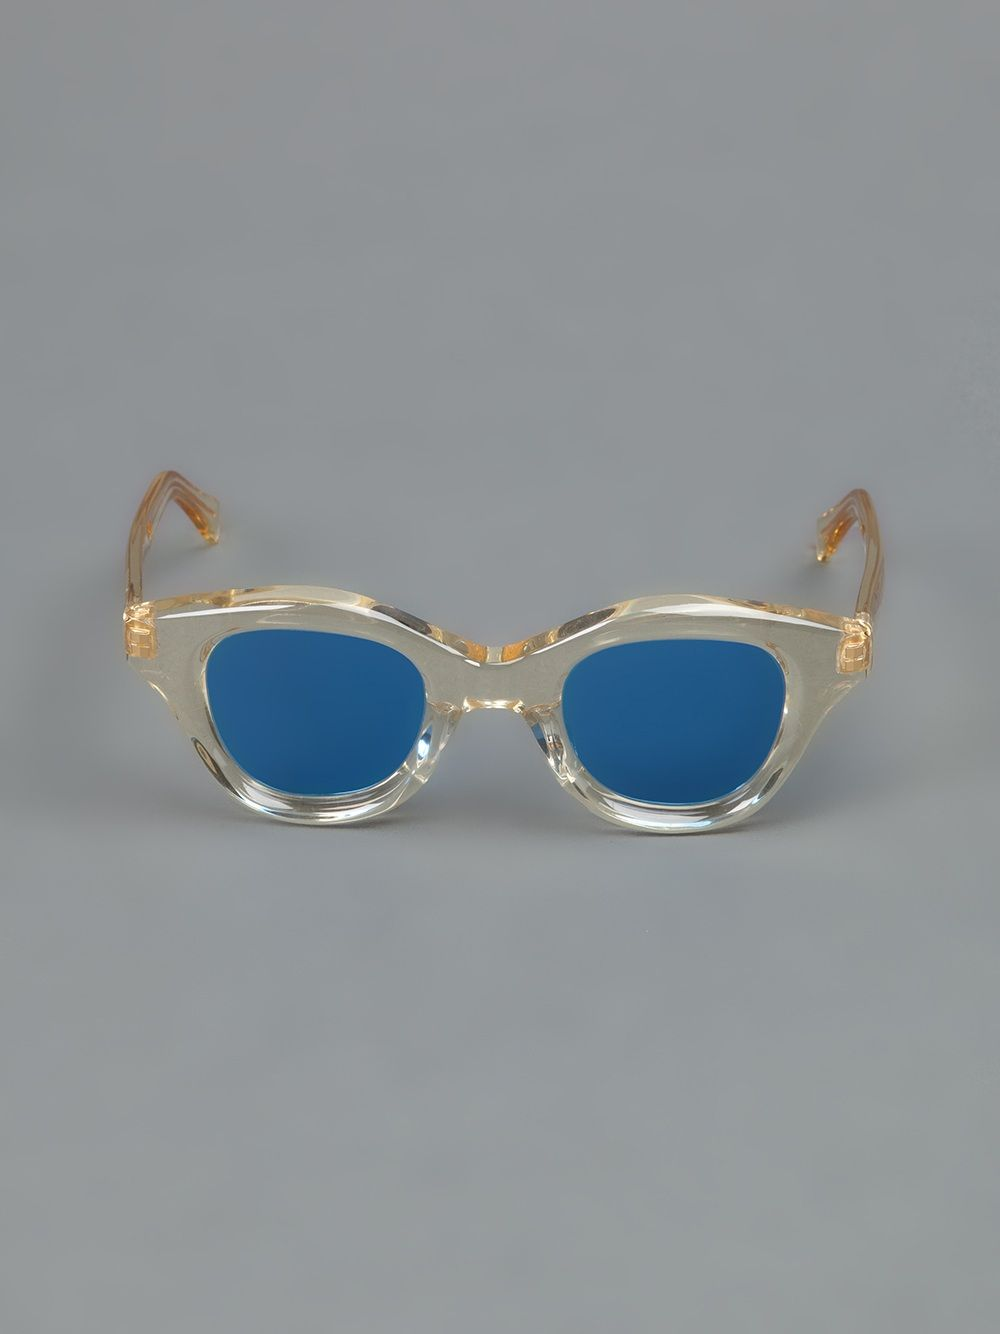 Lorenzo 'Hook' Sunglasses